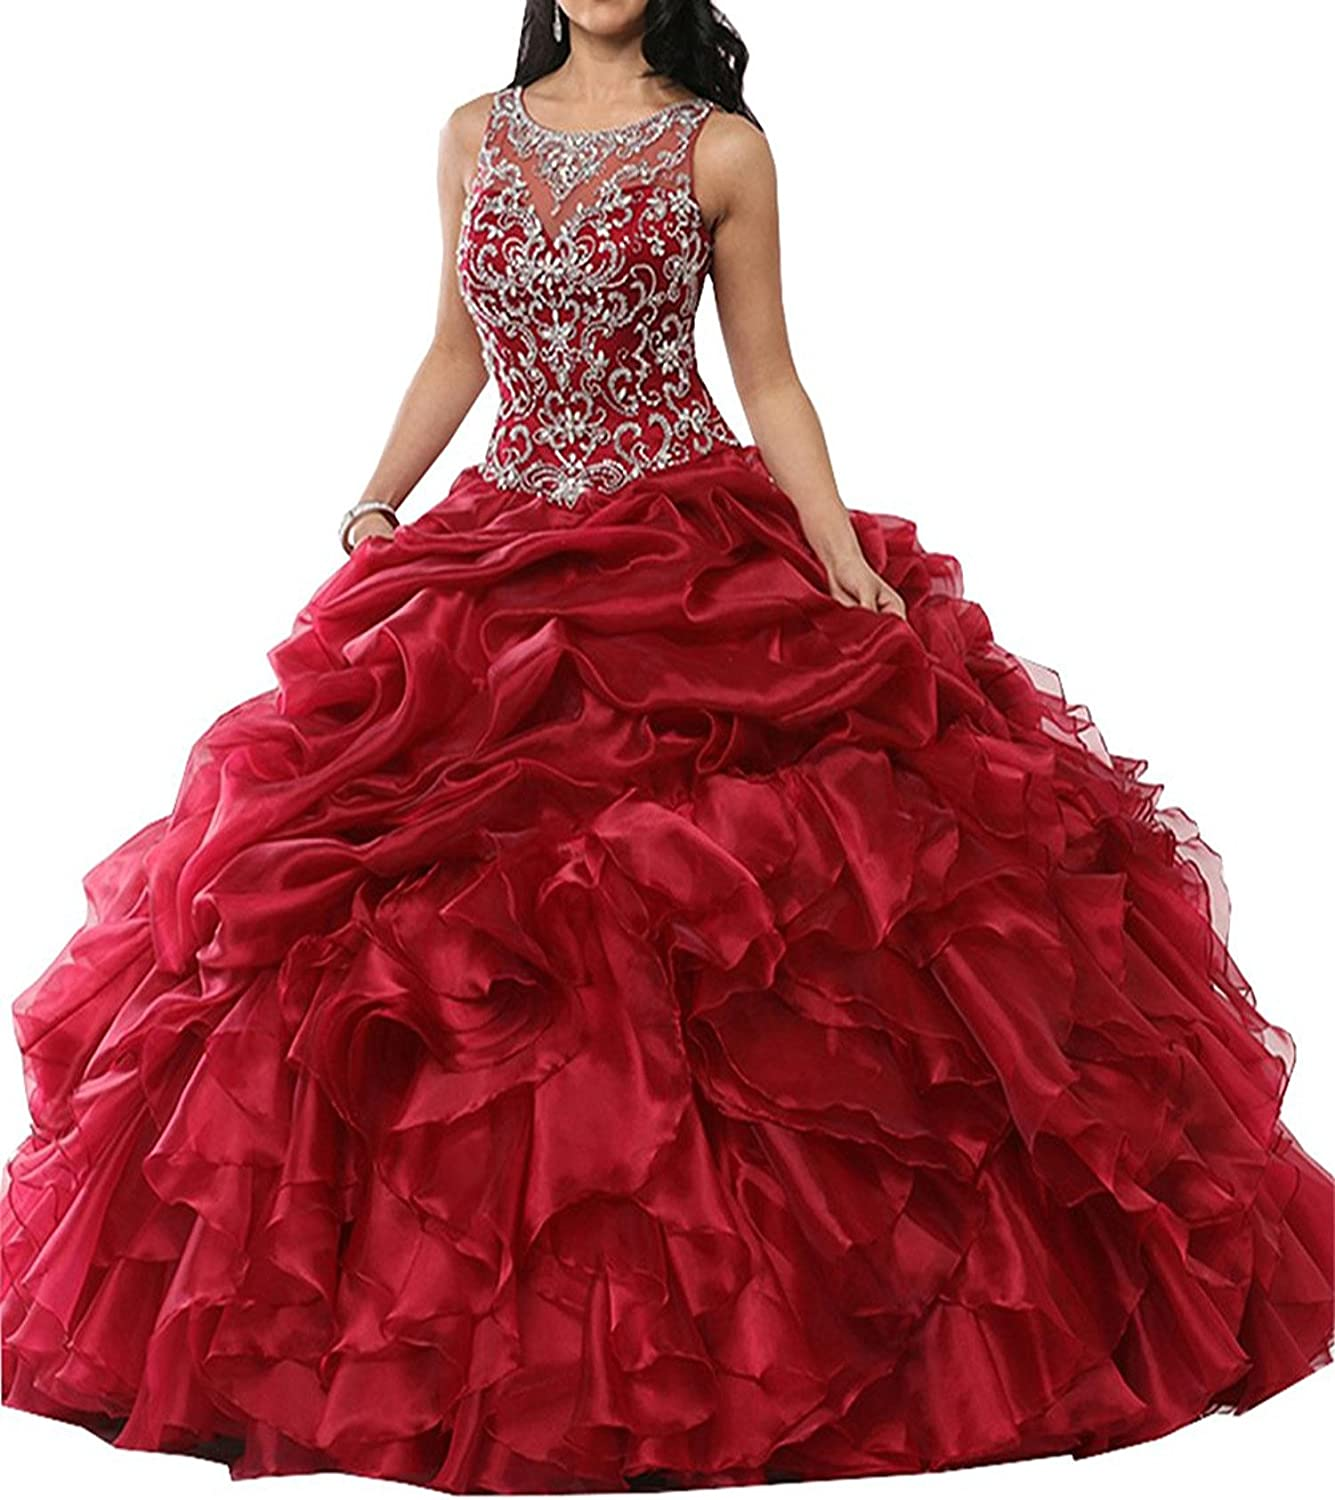 Lavaring Women's Scoop Organza Hollow Beading Ruffle Laceup Quinceanera Dress